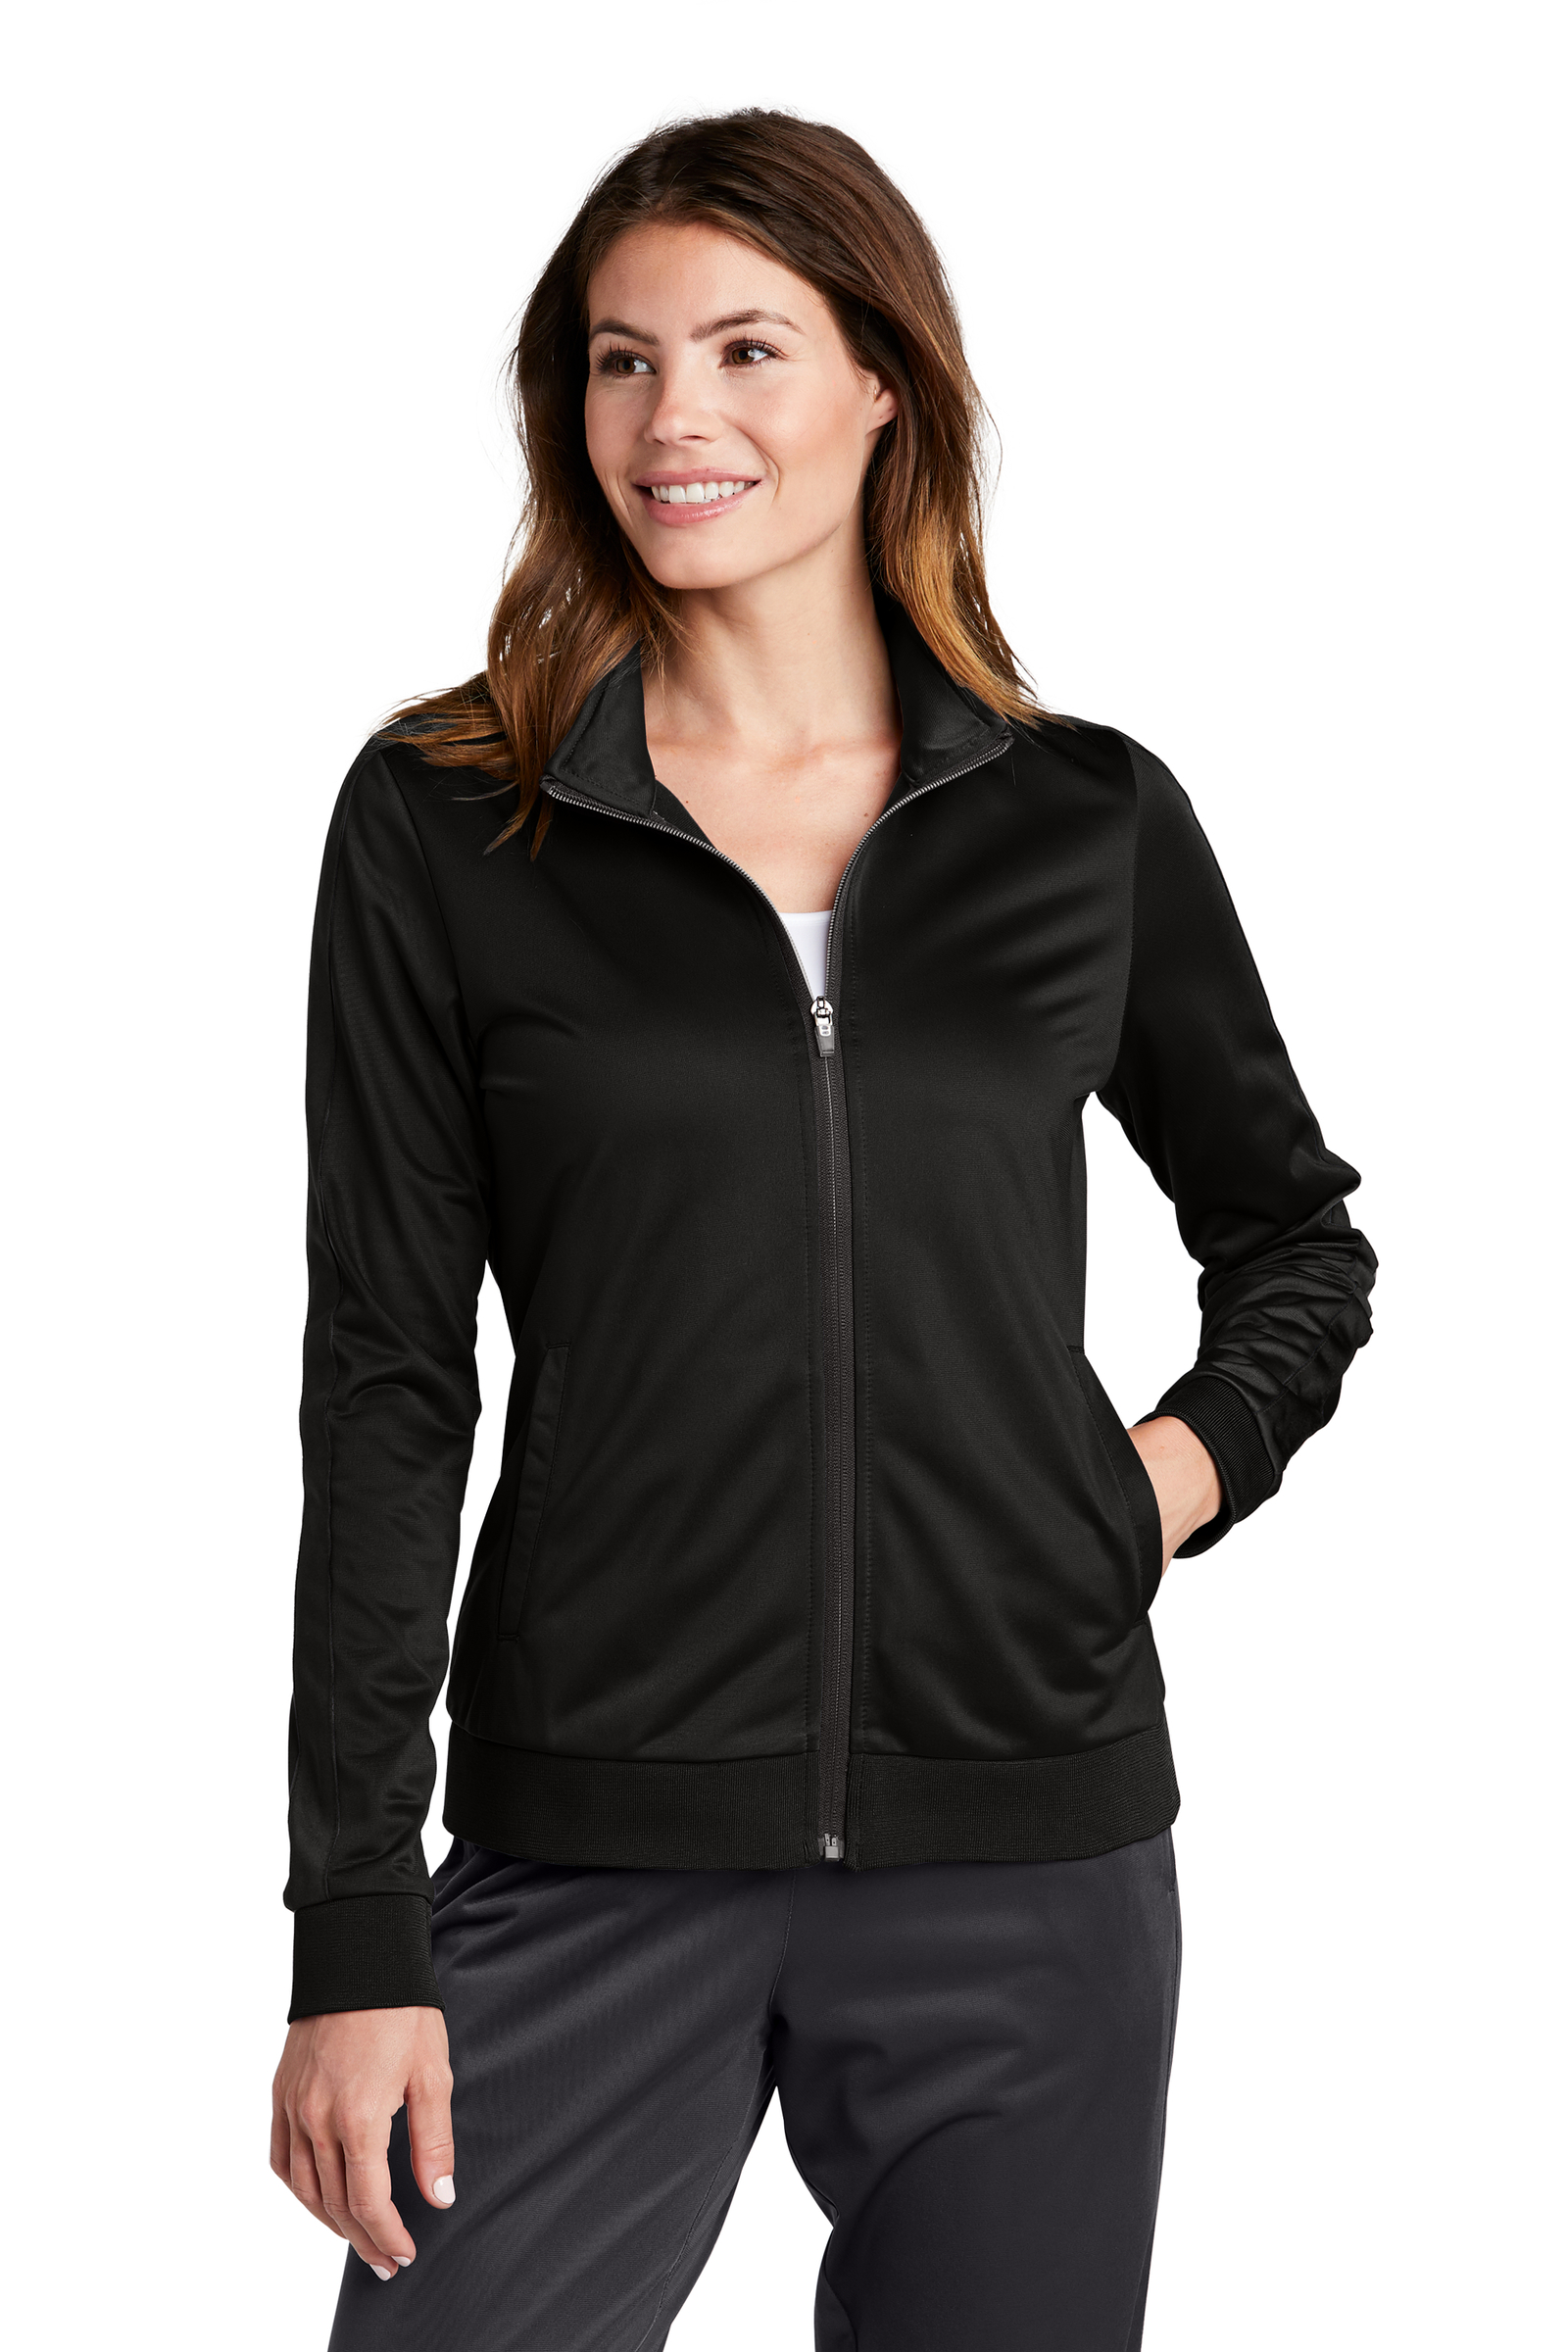 Sport-Tek Embroidered Women's Tricot Track Jacket